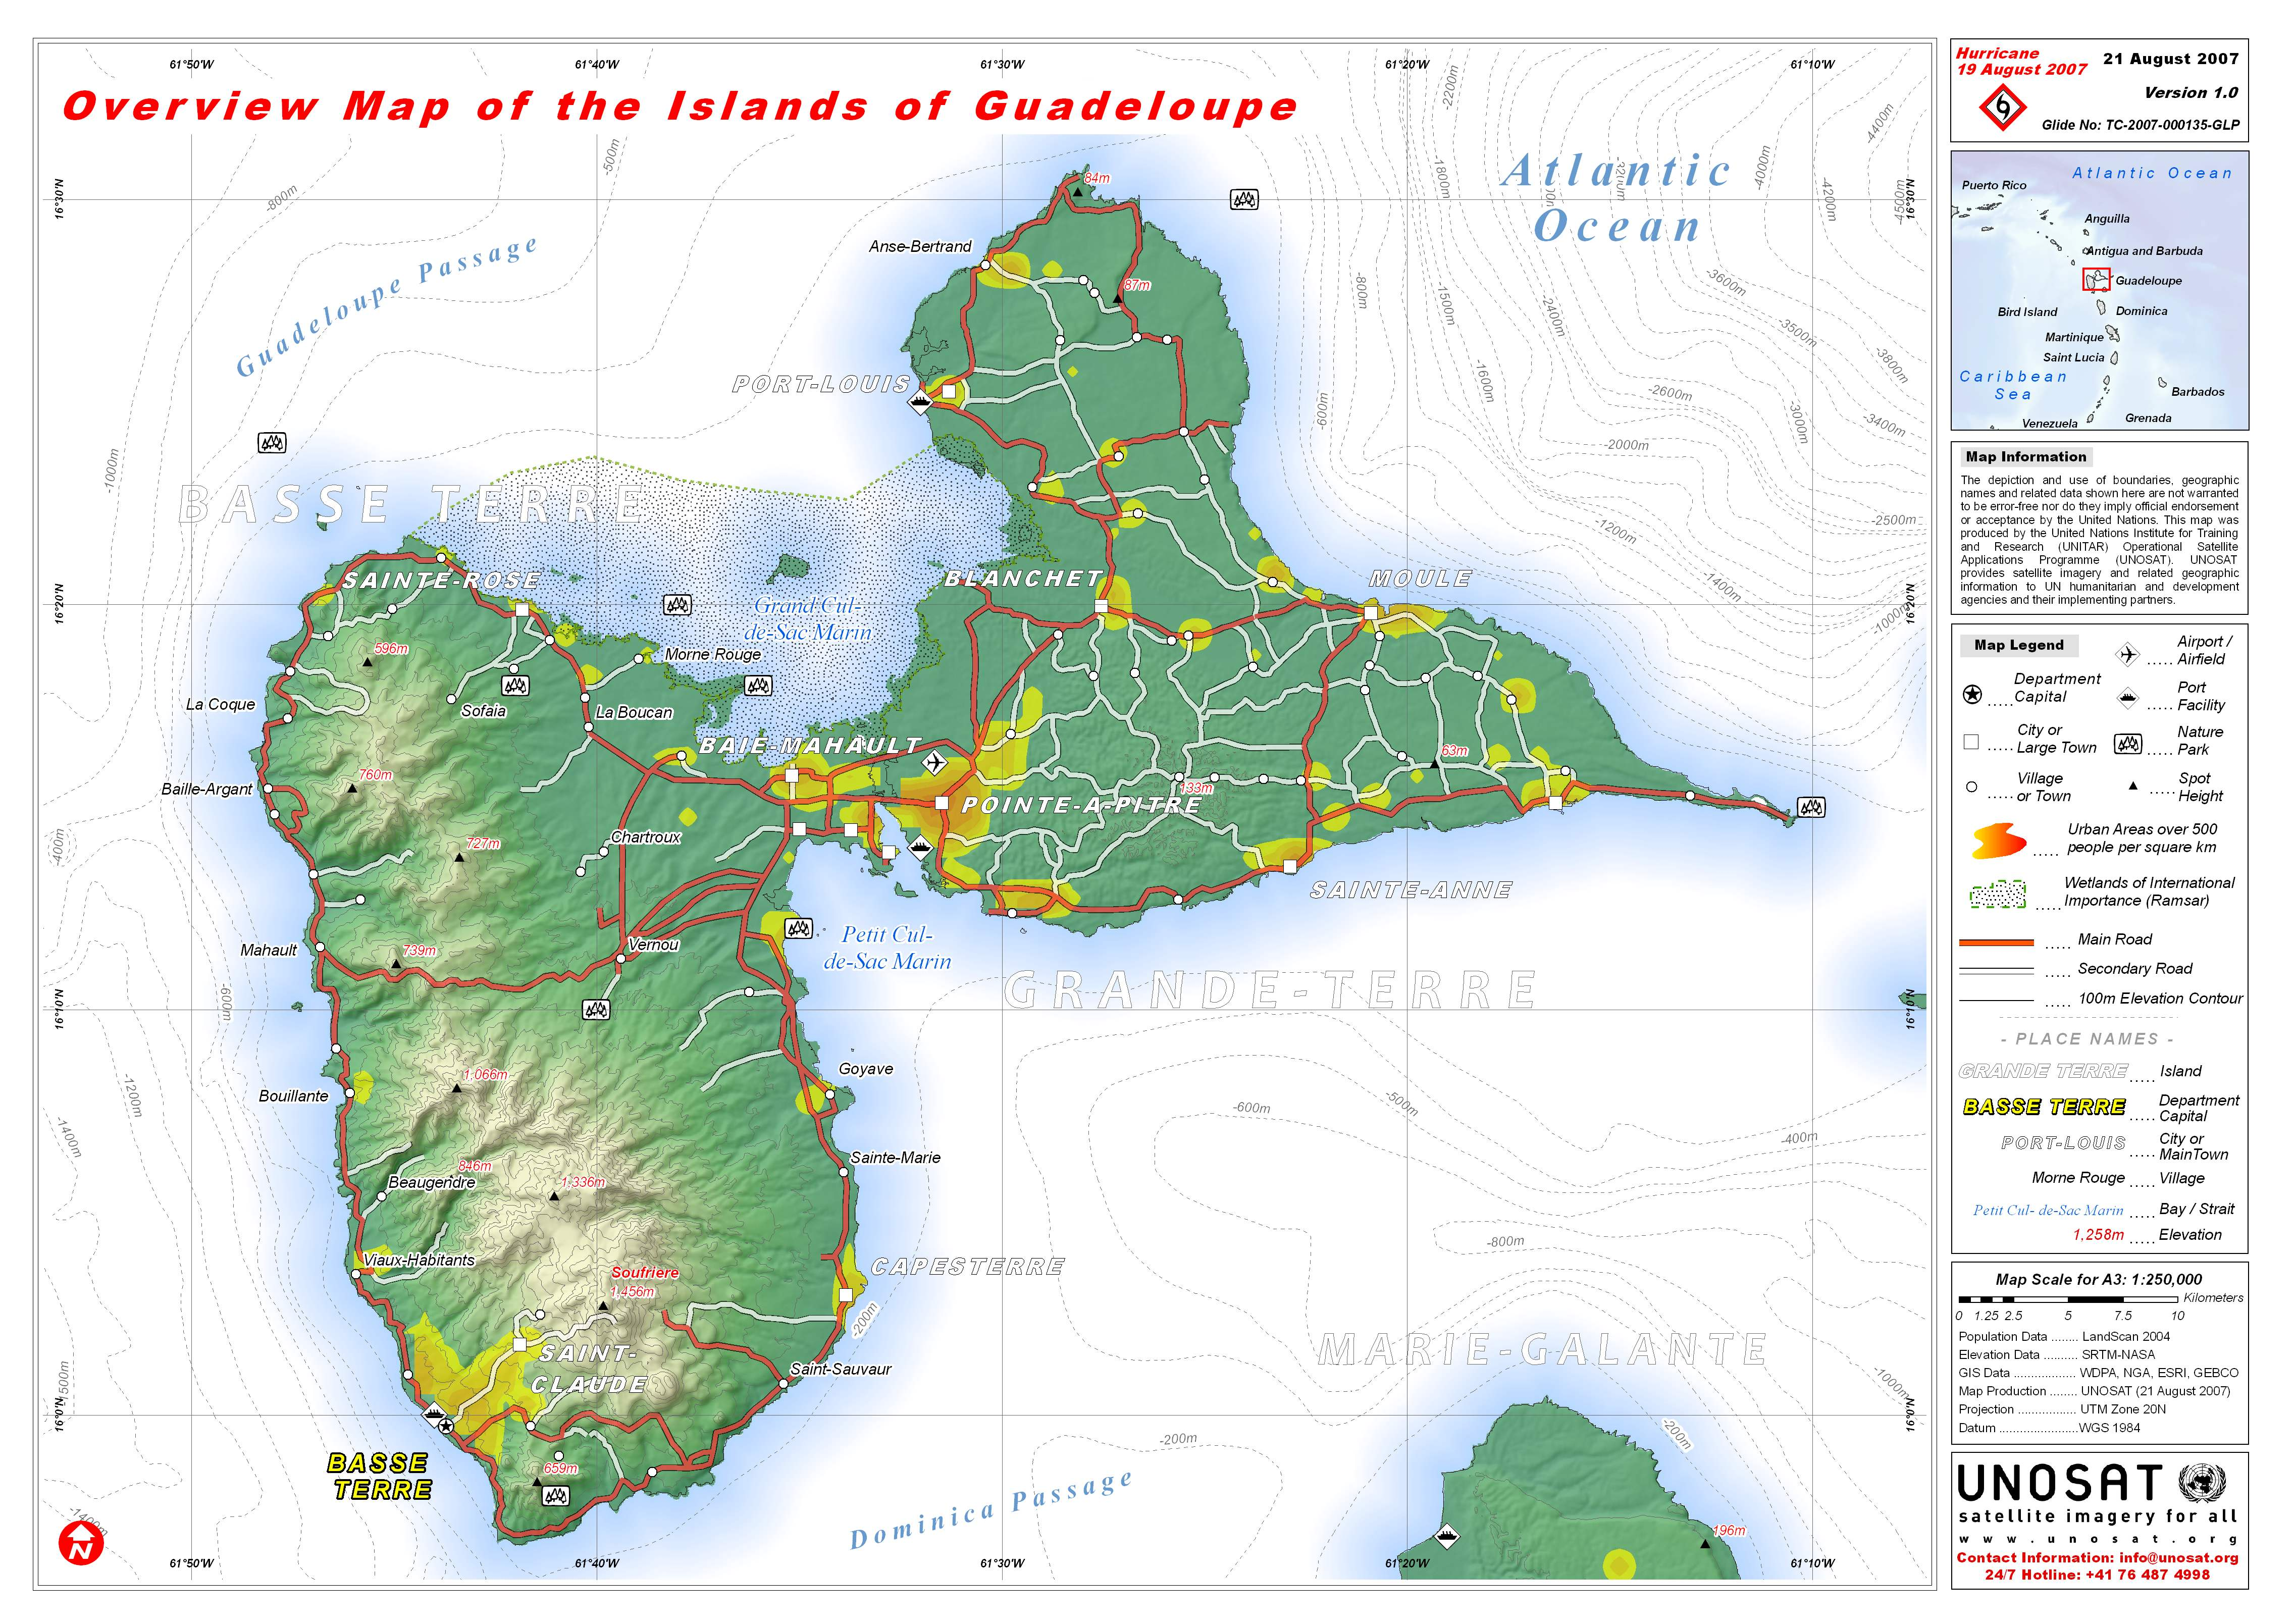 Guadeloupe overview map see map details from unosat web cern ch